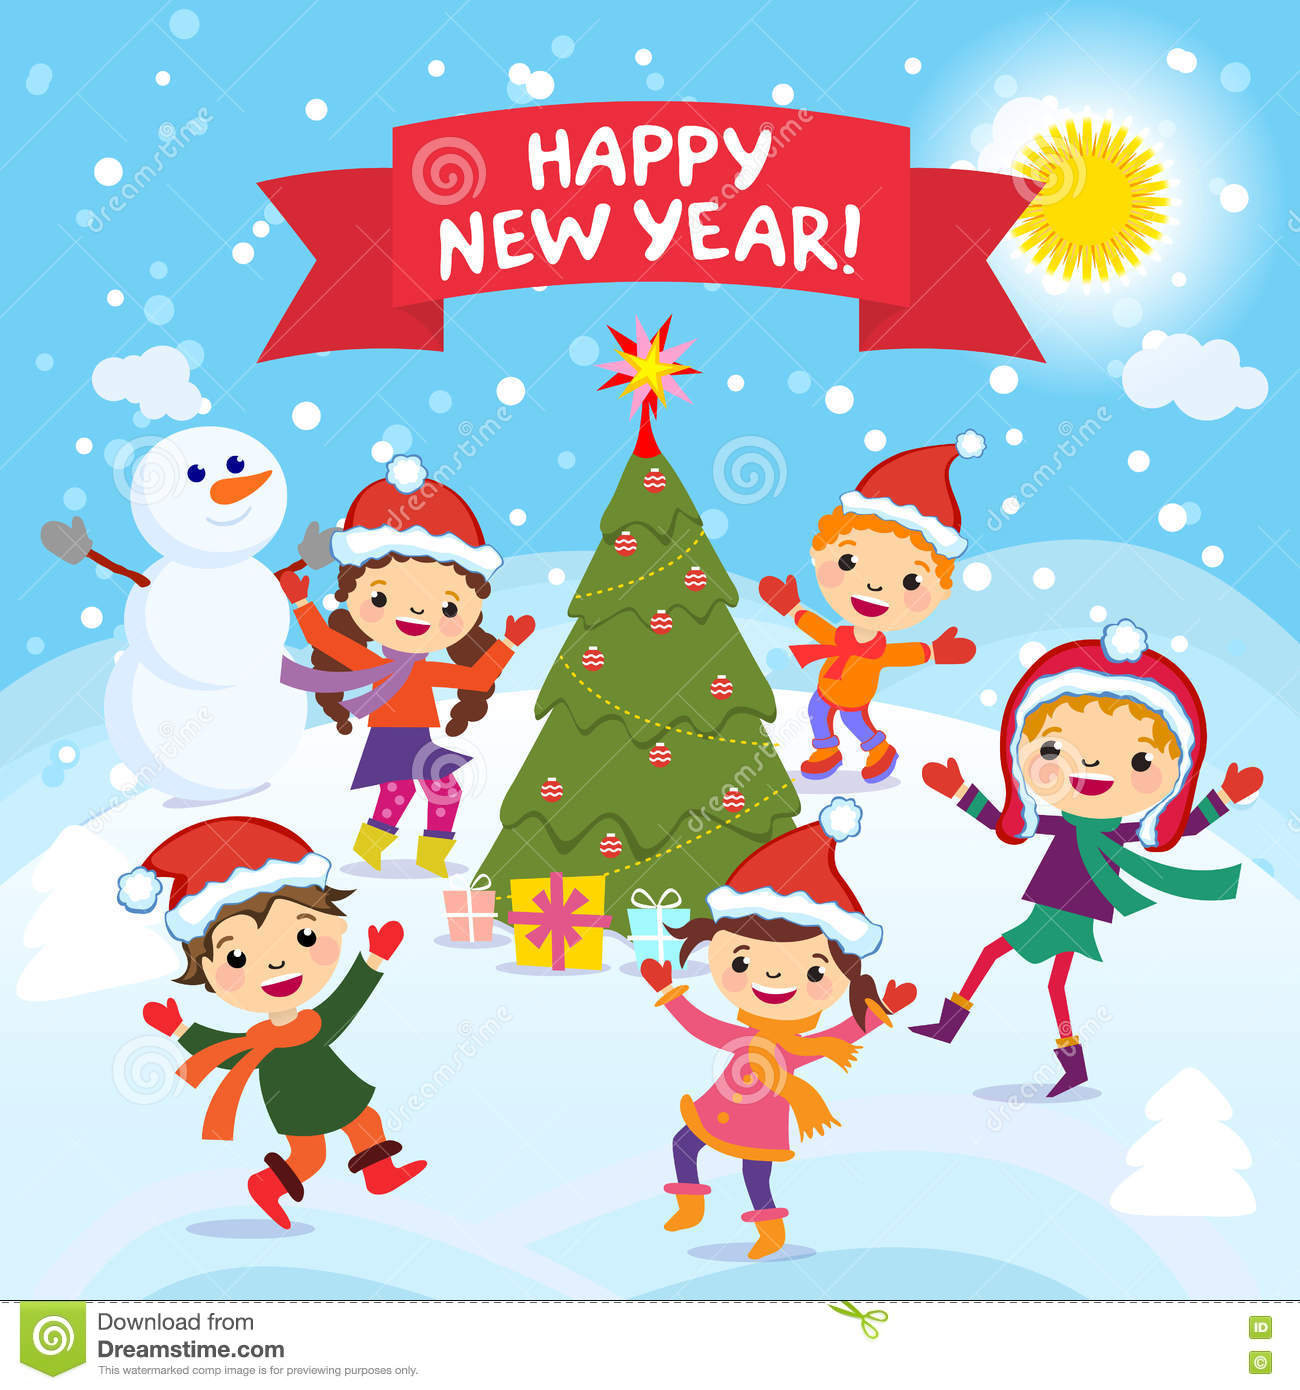 happy new year 2017 winter fun cheerful kids playing in the snow stock vector illustration of a group of happy children in red santa hat and playing